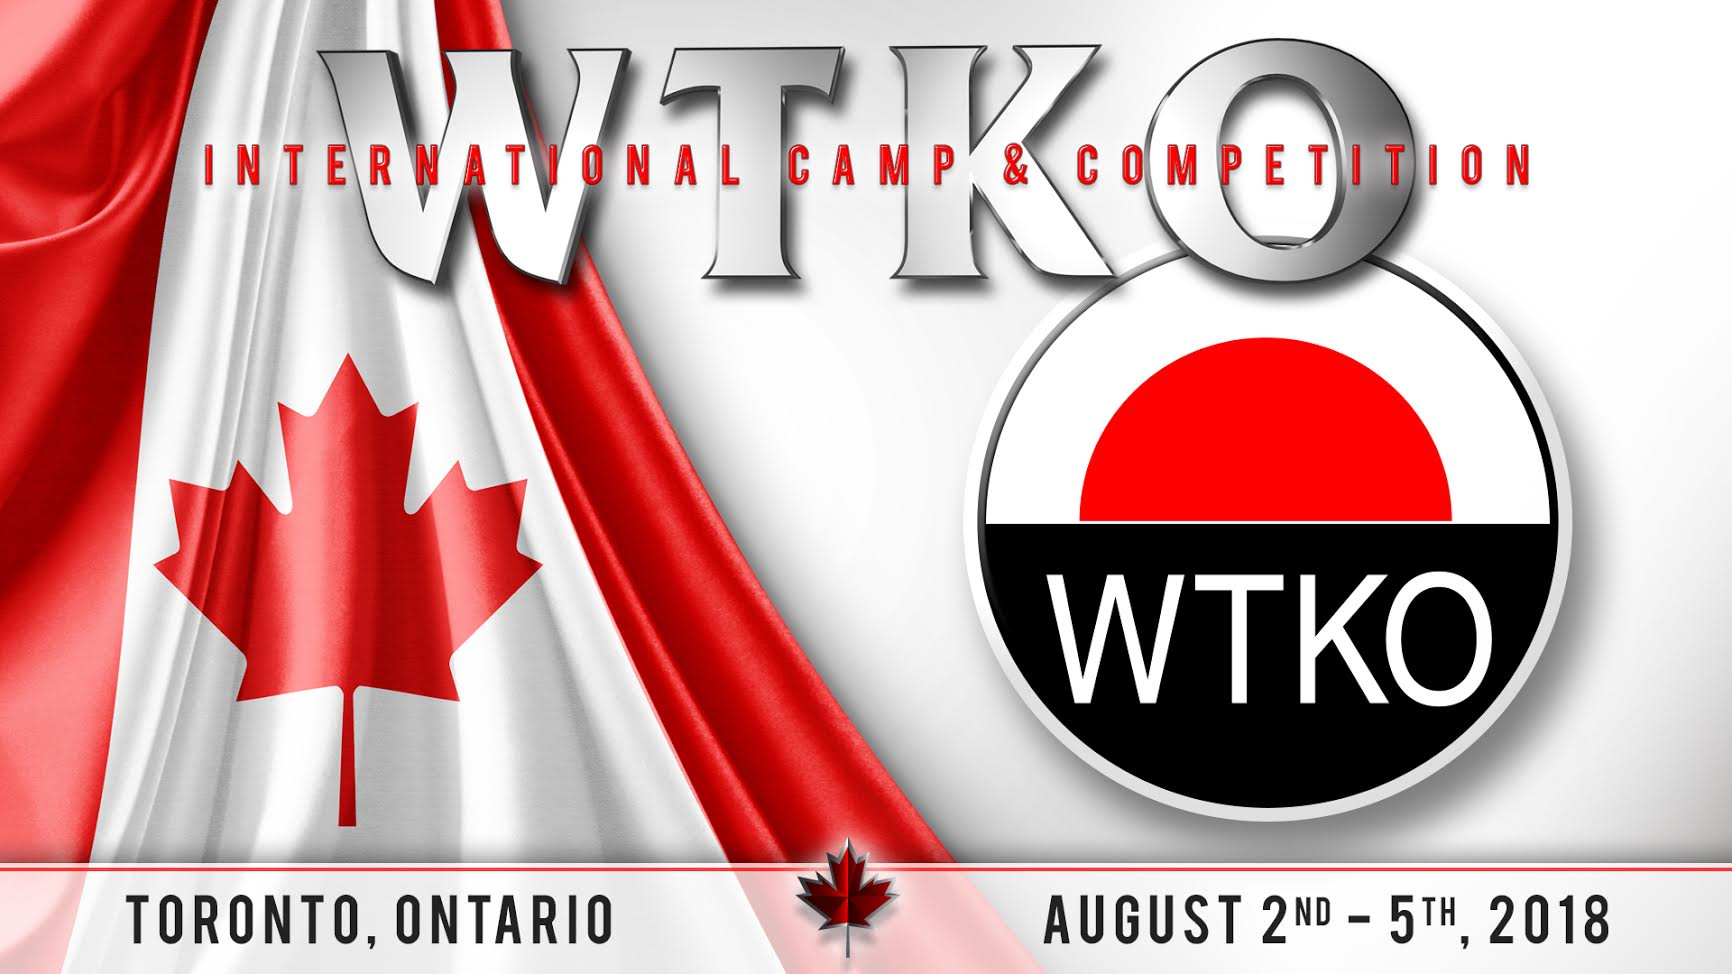 2018 WTKO International Camp & Competition